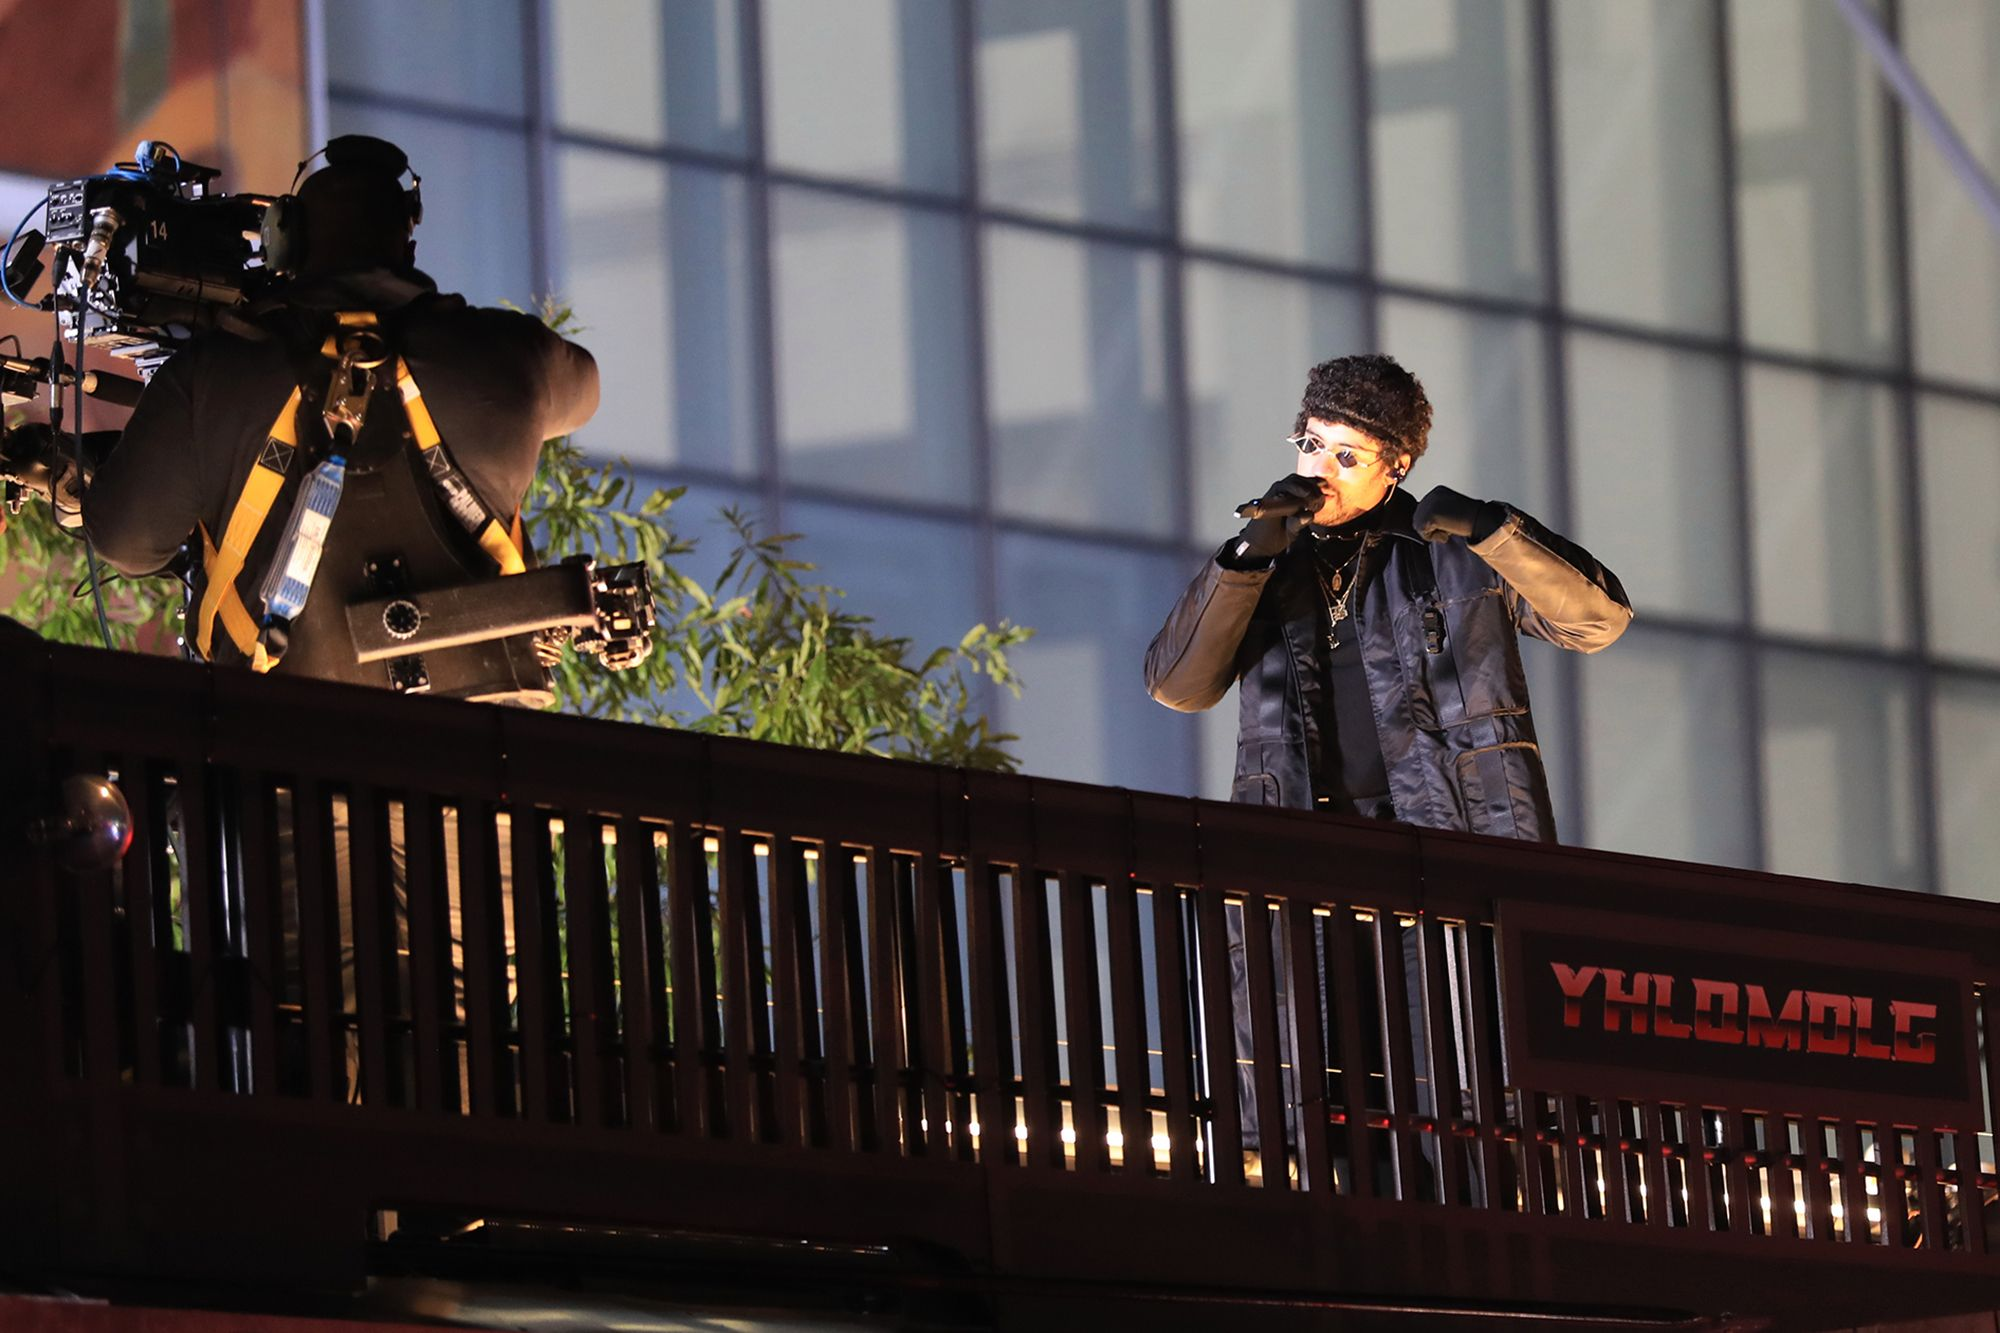 Bad Bunny performs live concert from a flatbed truck driving through New York City